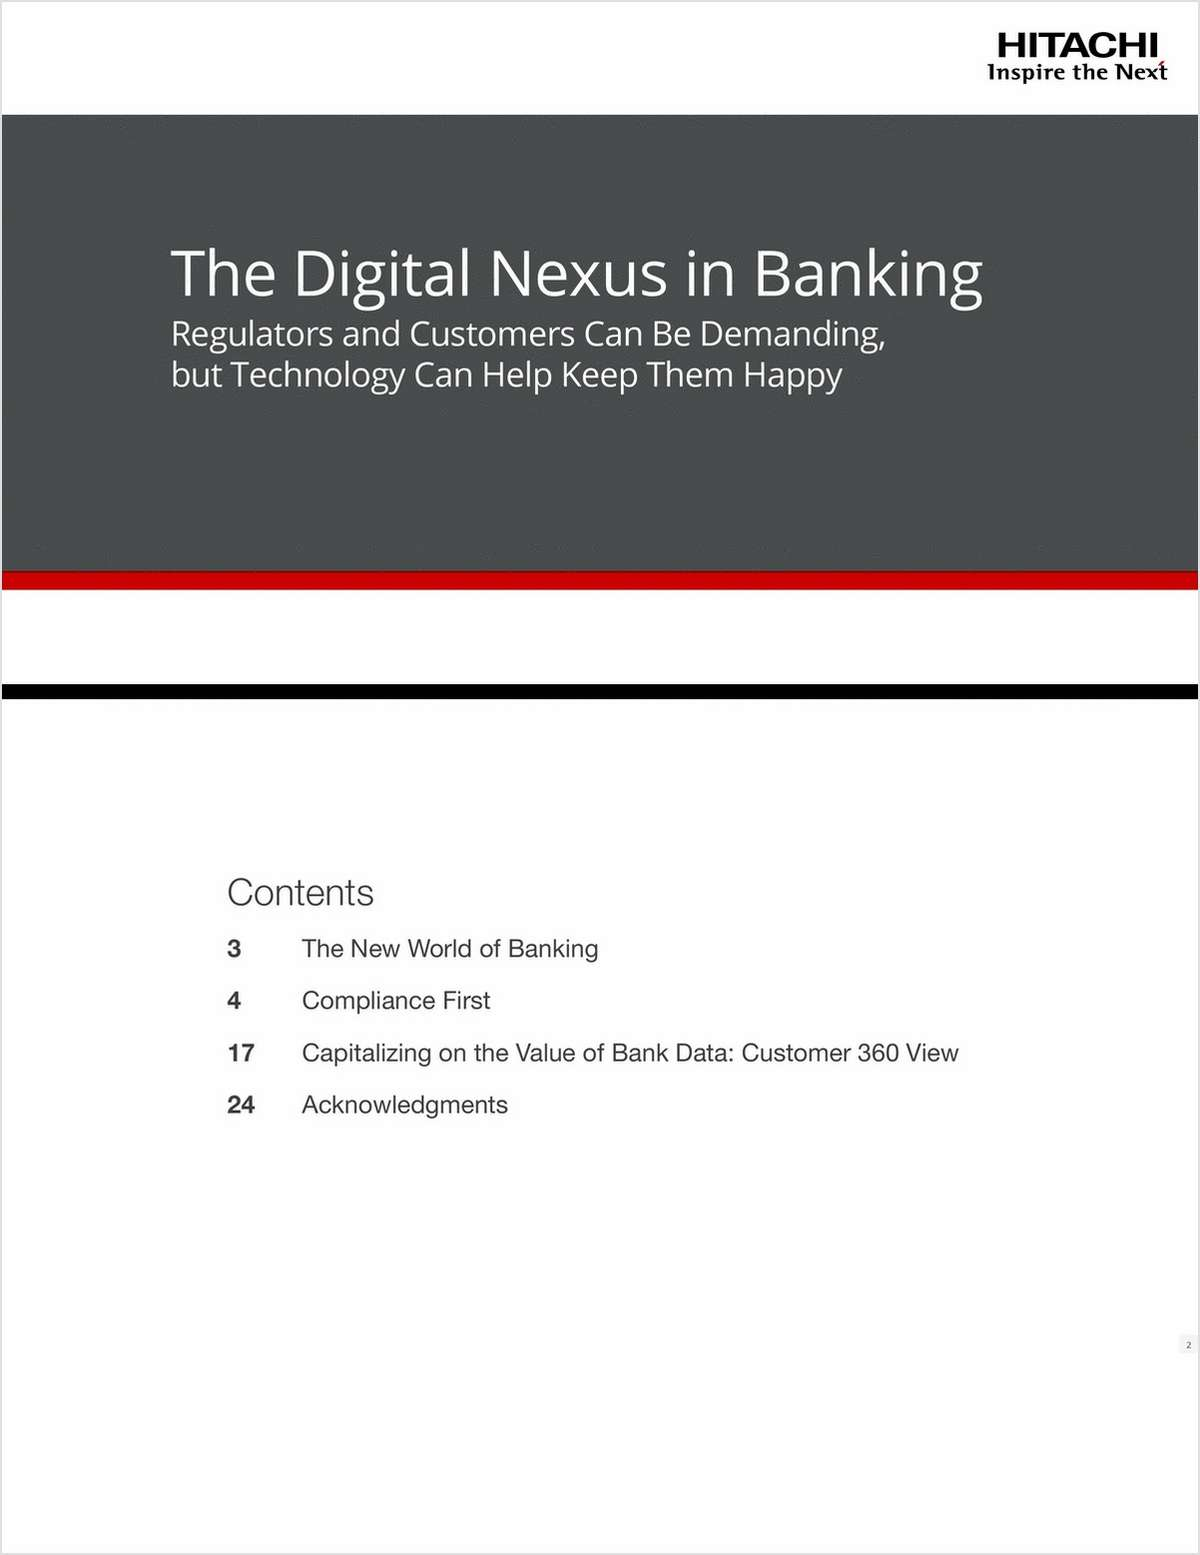 Banking e-Book: How Technology Helps Meet Regulator and Customer Demands